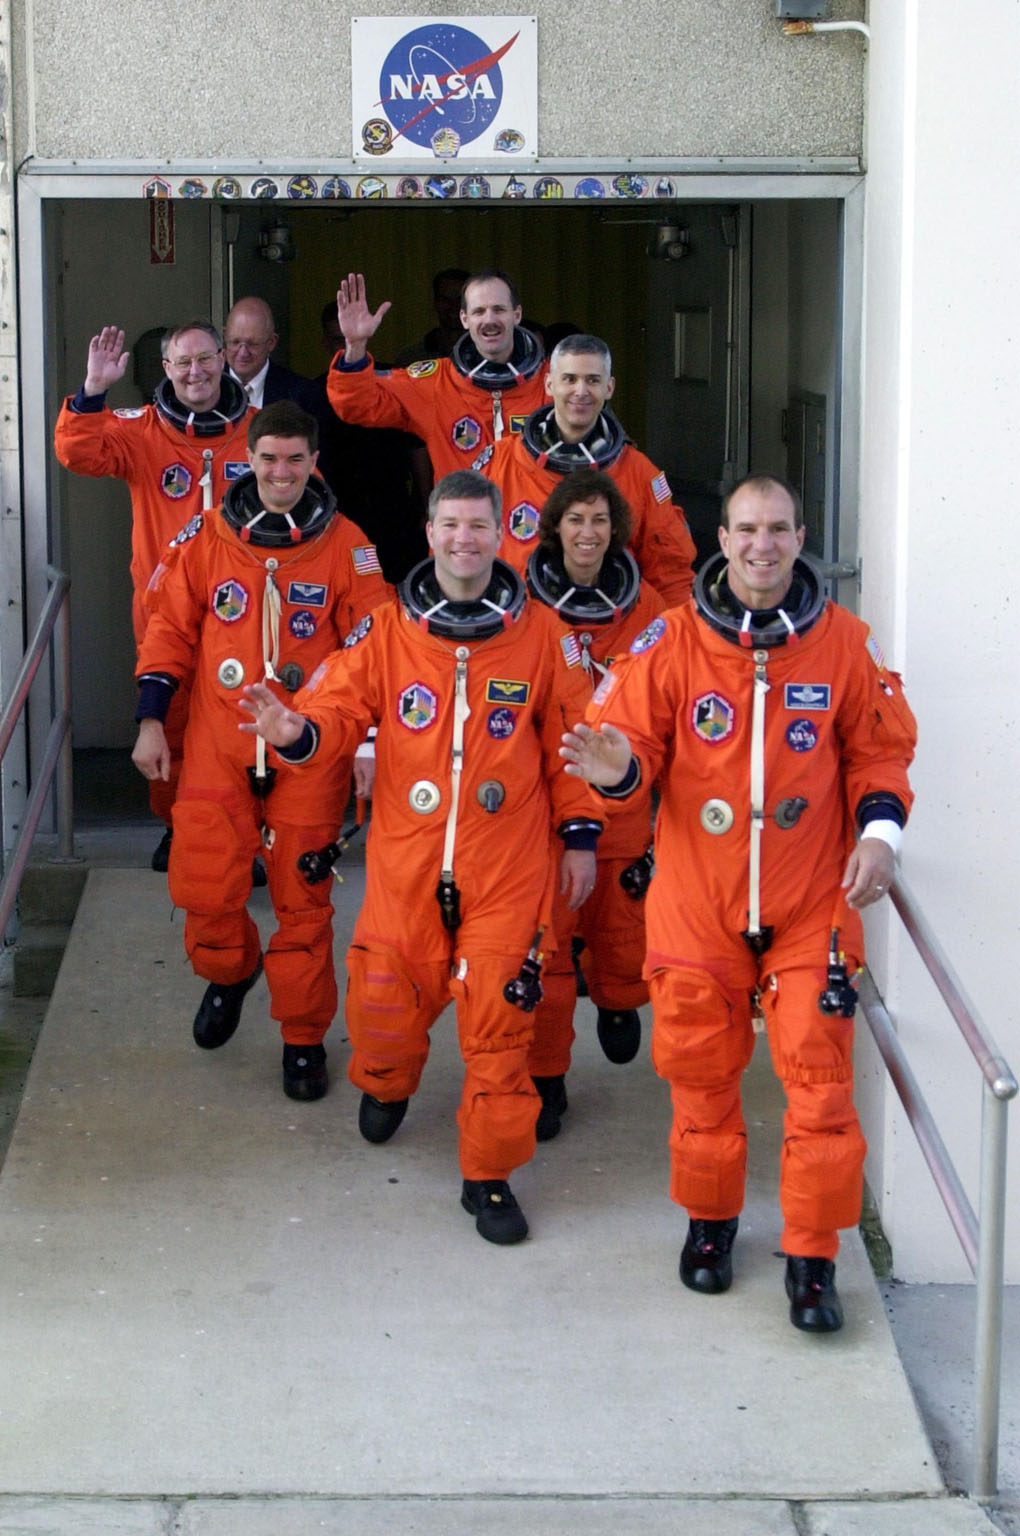 KENNEDY SPACE CENTER, FLA. -- The STS-110 crew walks out of the Operations and Checkout Building on their way to the launch pad for a simulated launch countdown. From the rear, left row, are Mission Specialists Jerry Ross and Rex Walheim, Pilot Stephen Frick; right row, Mission Specialists Steven Smith, Lee Morin and Ellen Ocho, and Commander Michael Bloomfield. The simulation is part of Terminal Countdown Demonstration Test activities. TCDT also includes emergency egress training and is held at KSC prior to each Space Shuttle flight. Scheduled for launch April 4, the 11-day mission will feature Shuttle Atlantis docking with the International Space Station (ISS) and delivering the S0 truss, the centerpiece-segment of the primary truss structure that will eventually extend over 300 feet